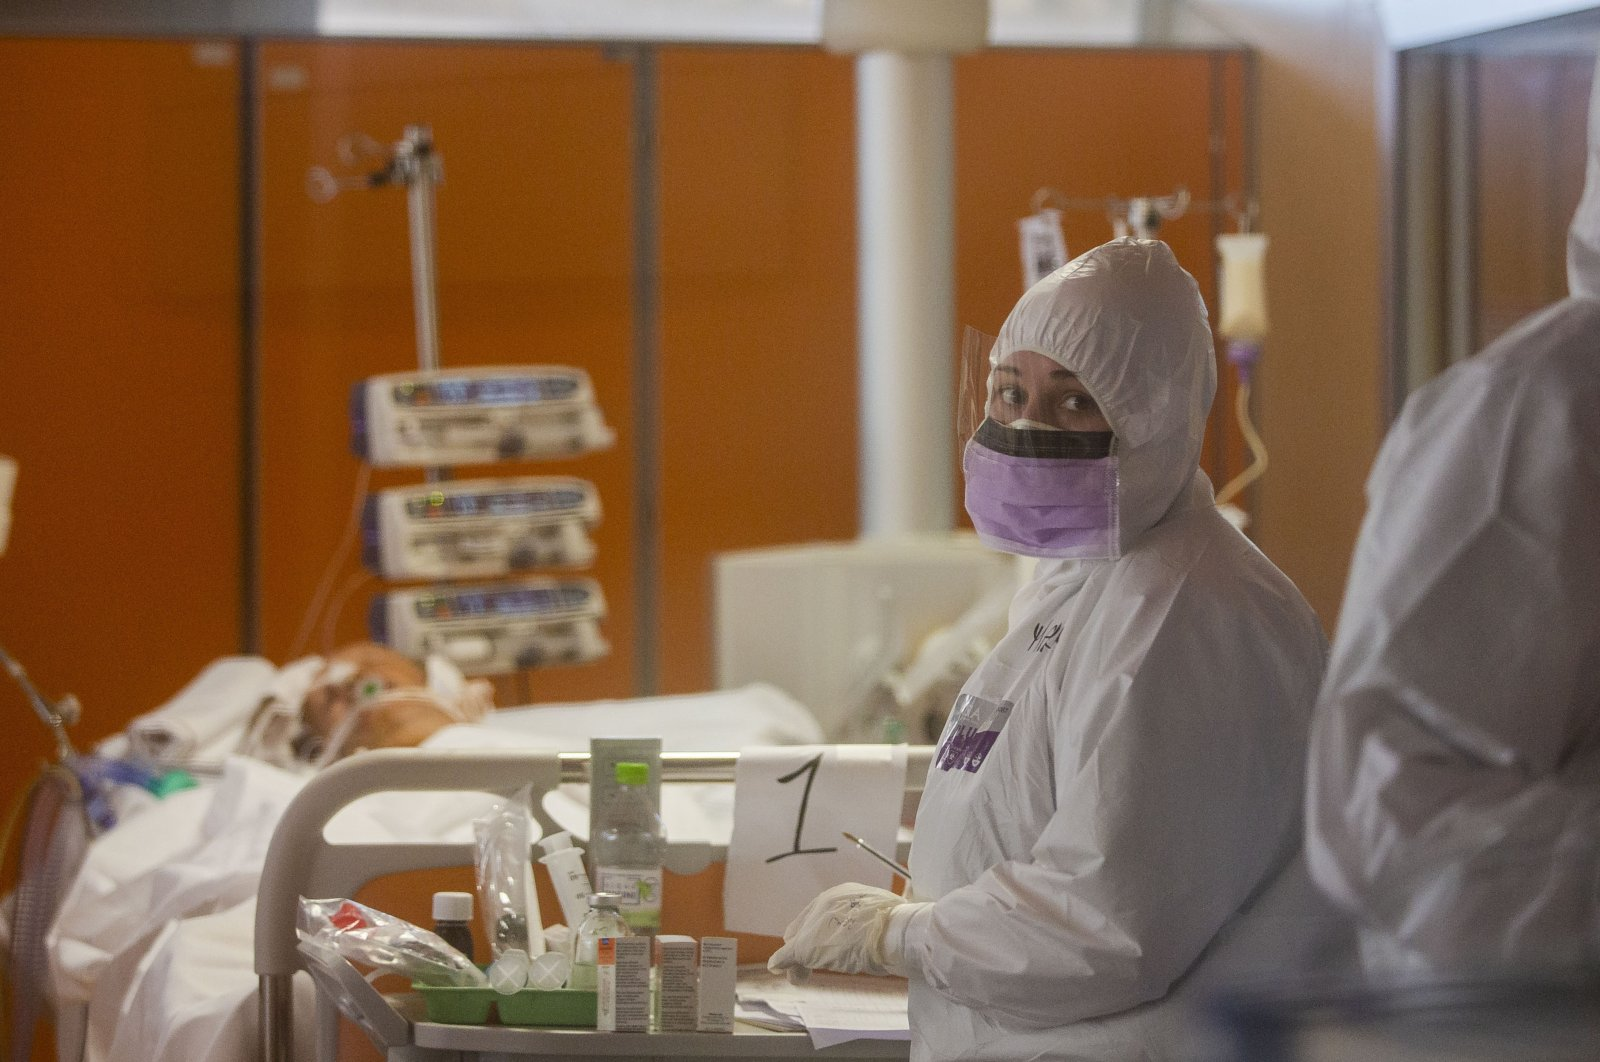 Medical staff at the Intensive Care Unit of the Casalpalocco COVID-19 Clinic on the outskirts of Rome tends to patients, Wednesday, March 25, 2020. (AP Photo)